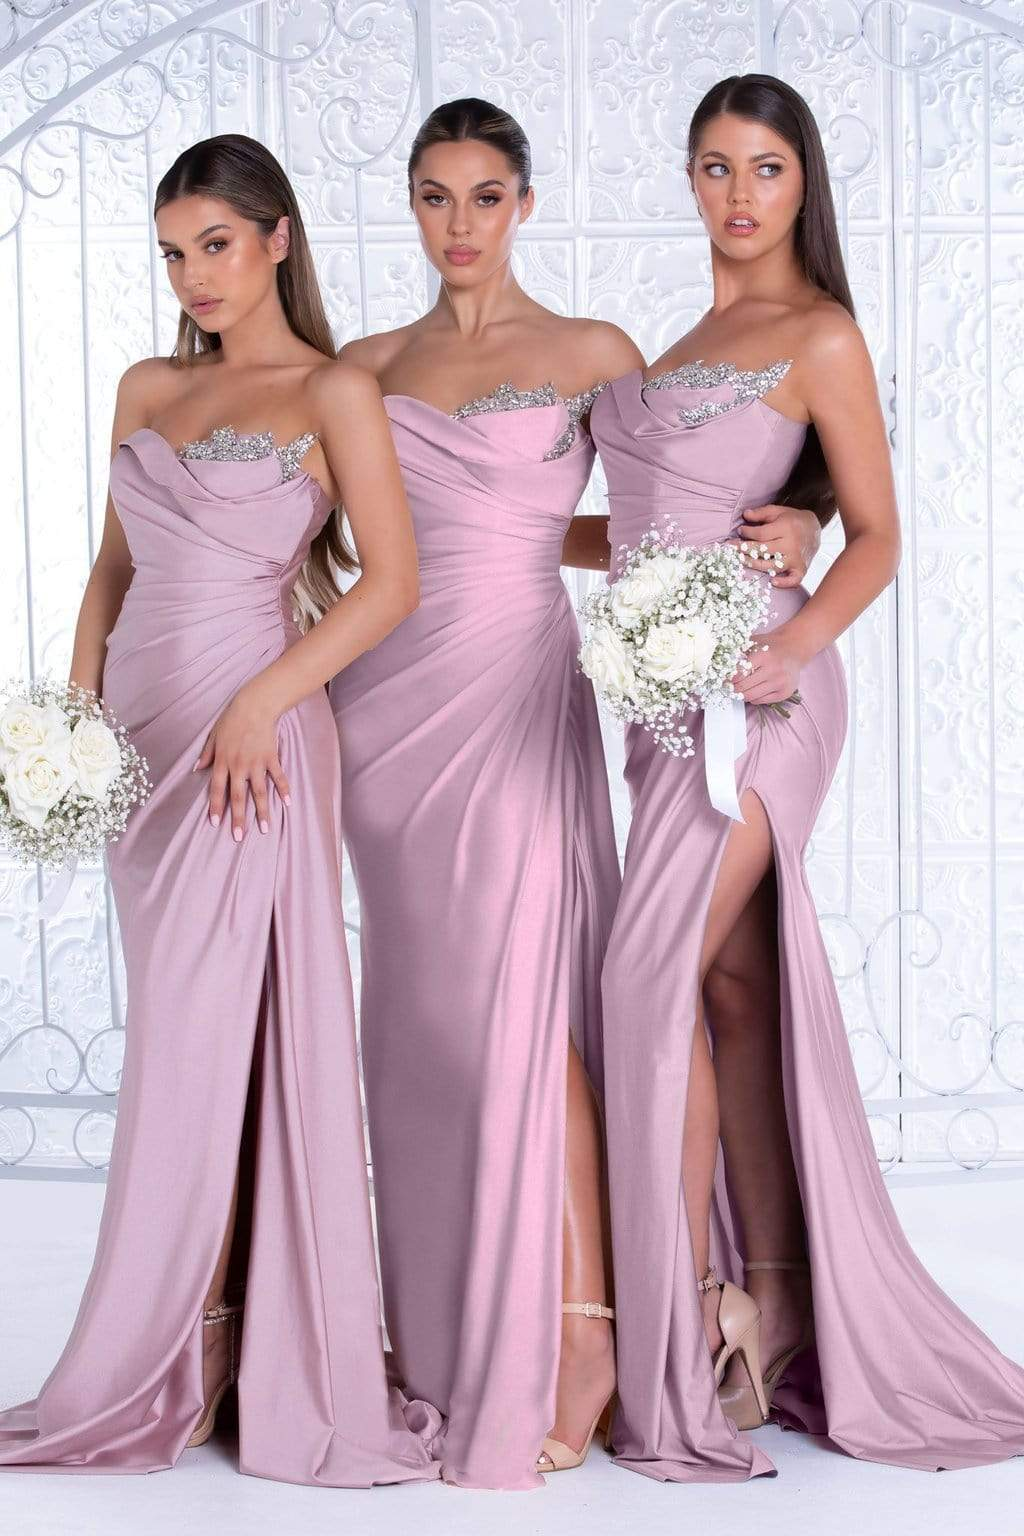 Portia and Scarlett - PS21218 Sweetheart Neck Drape Fitted Gown from Portia and Scarlett